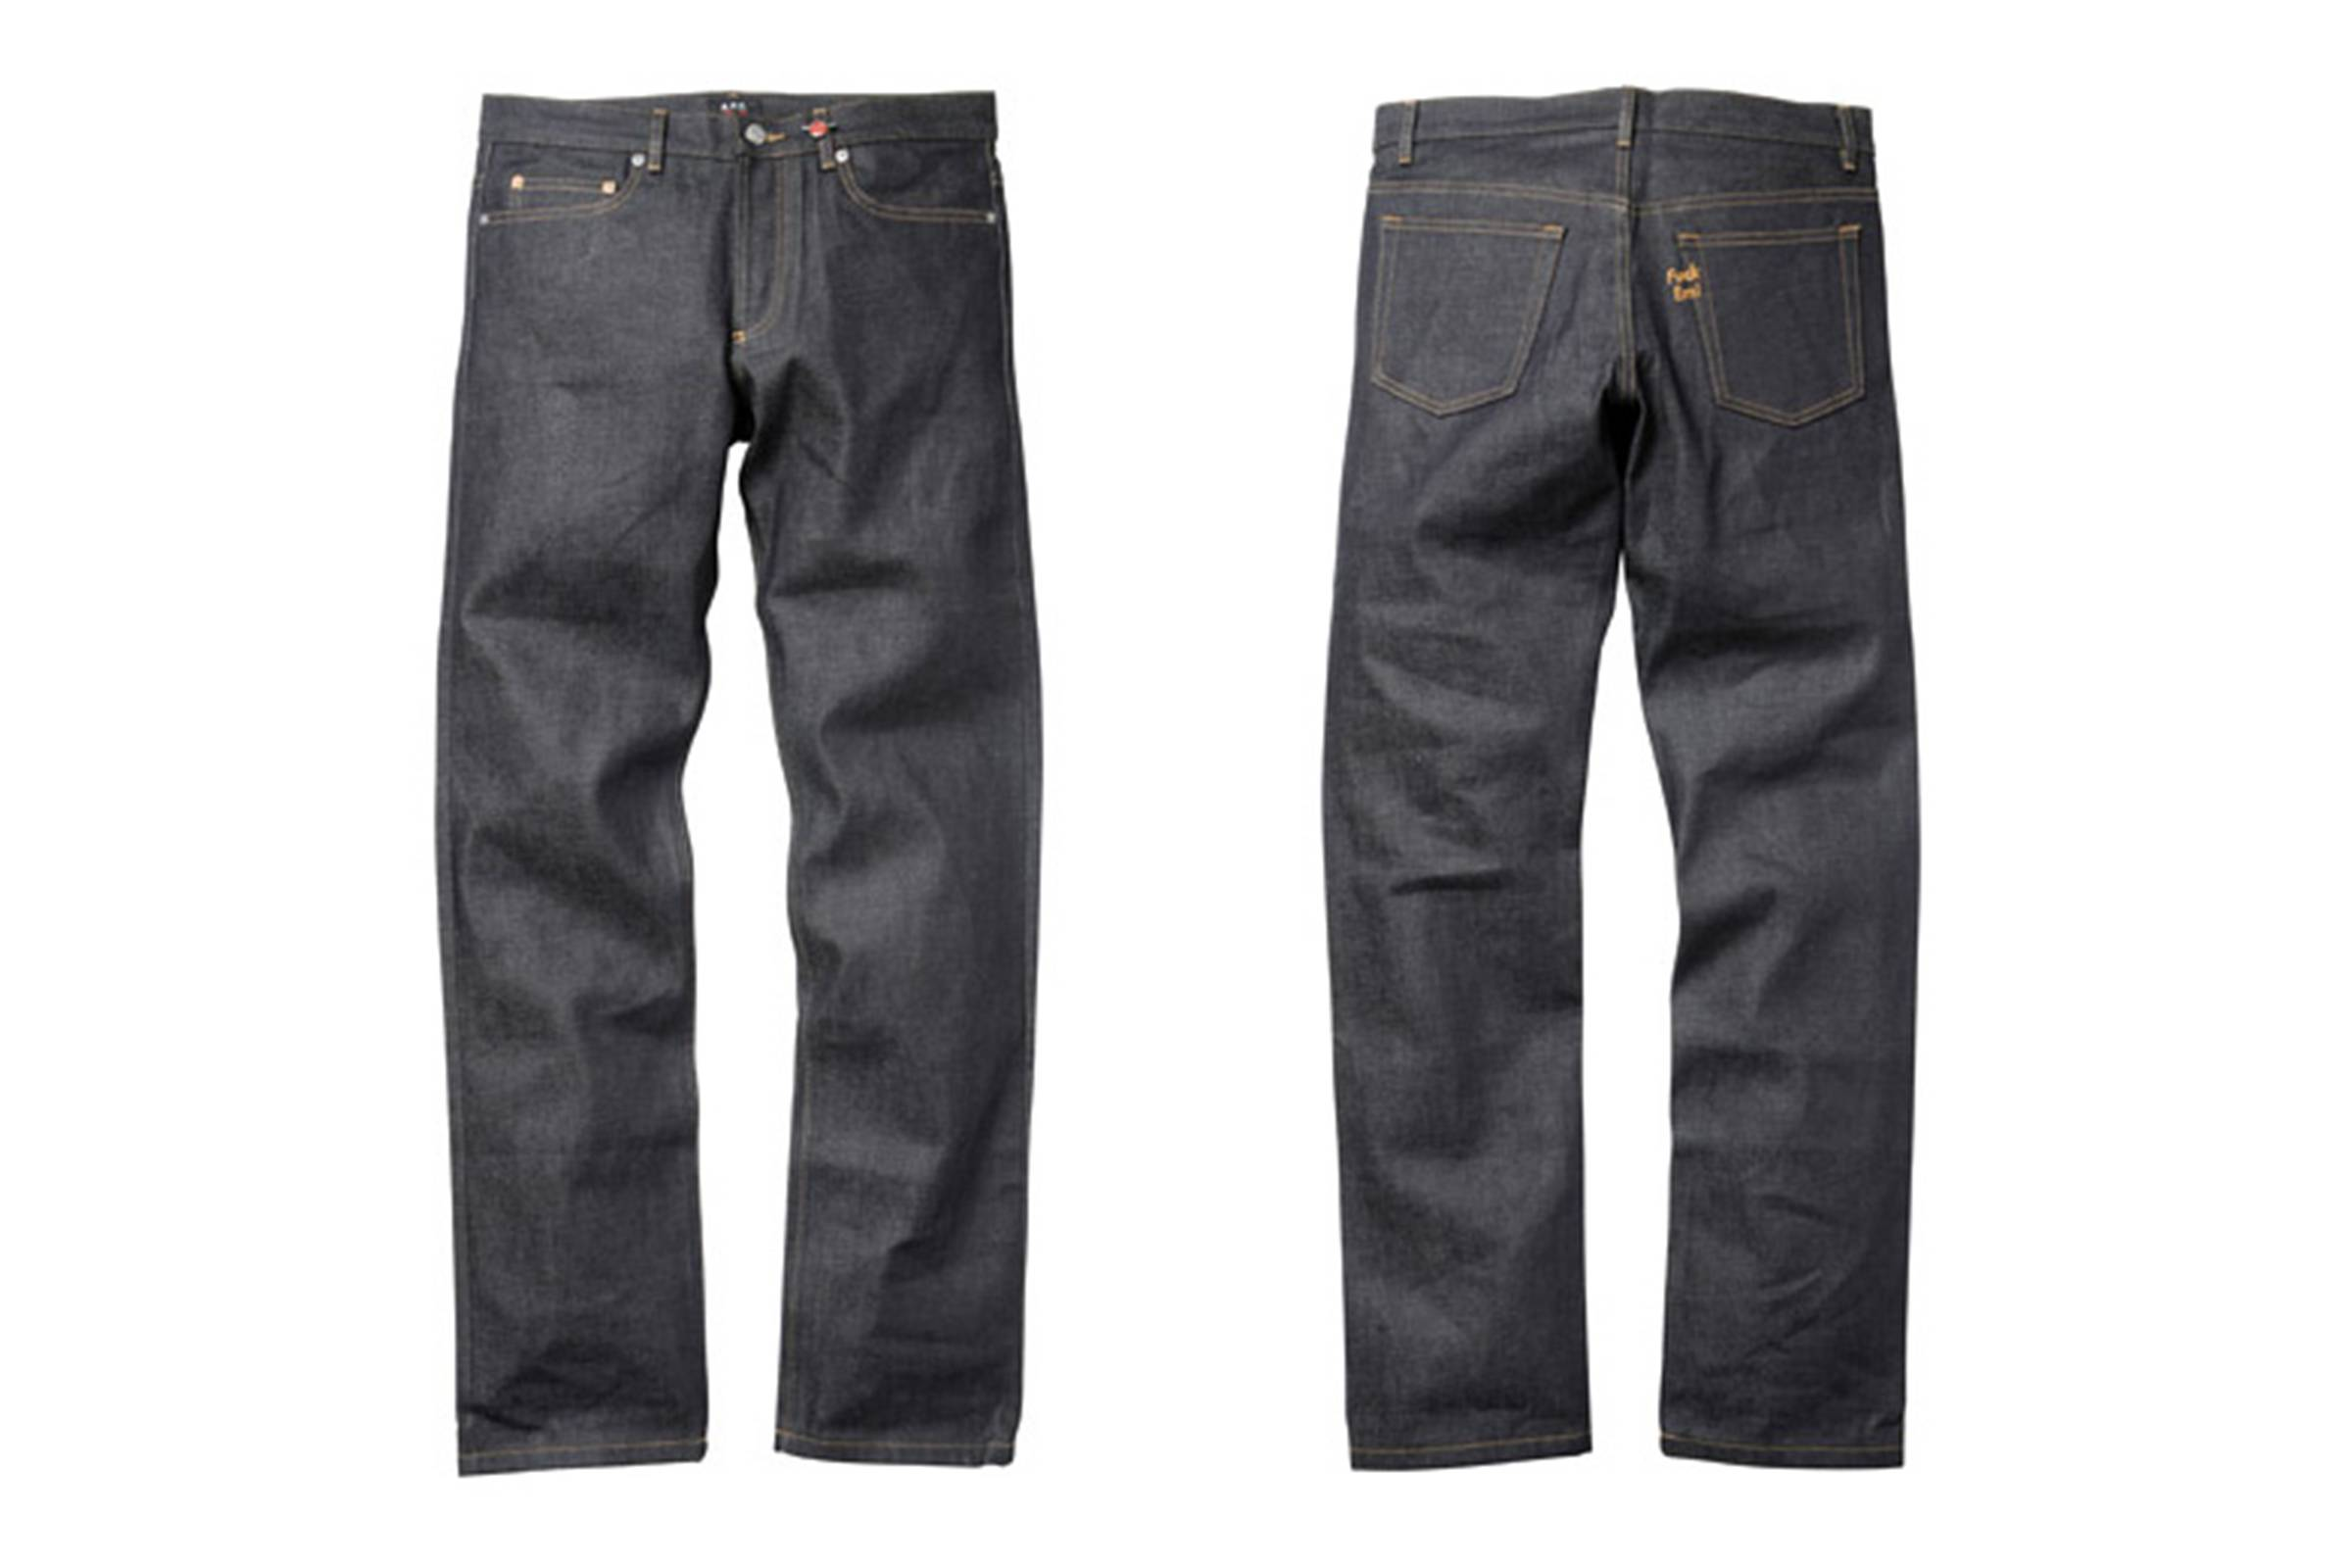 Supreme x A.P.C. Jeans made with Japanese selvedge denim (2009)